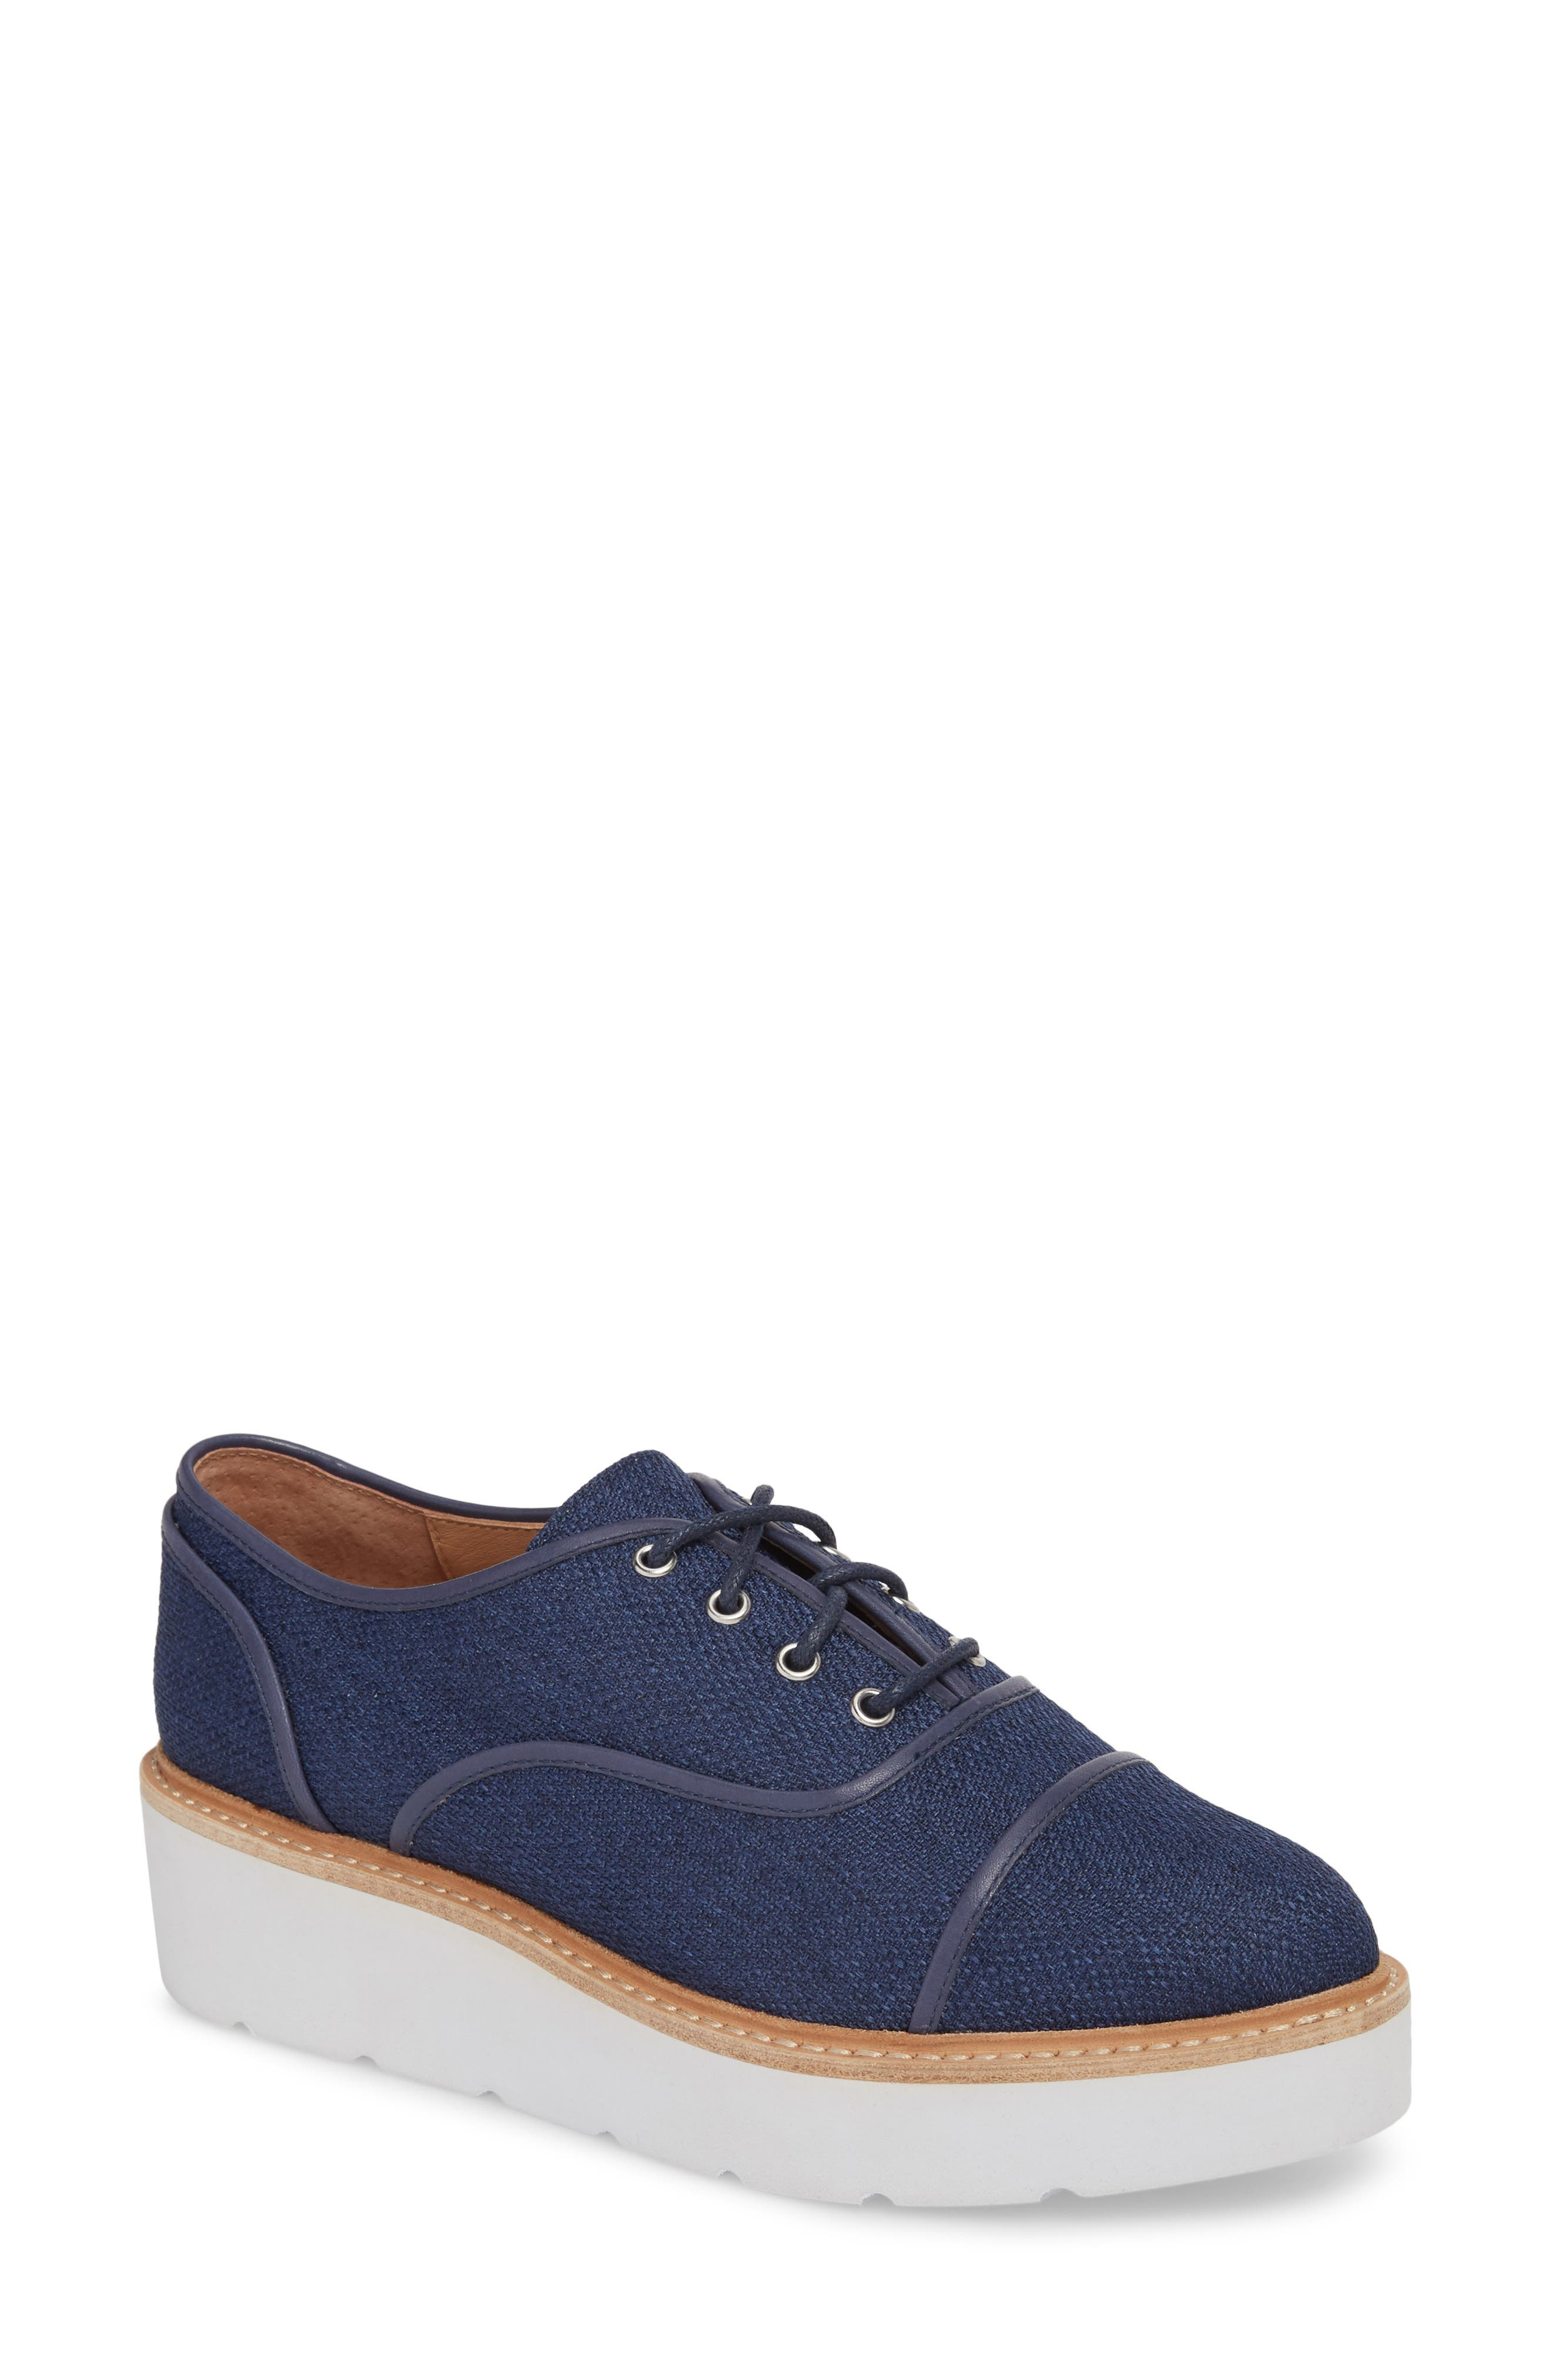 Mavis Cap Toe Platform Sneaker,                         Main,                         color, Blue Fabric